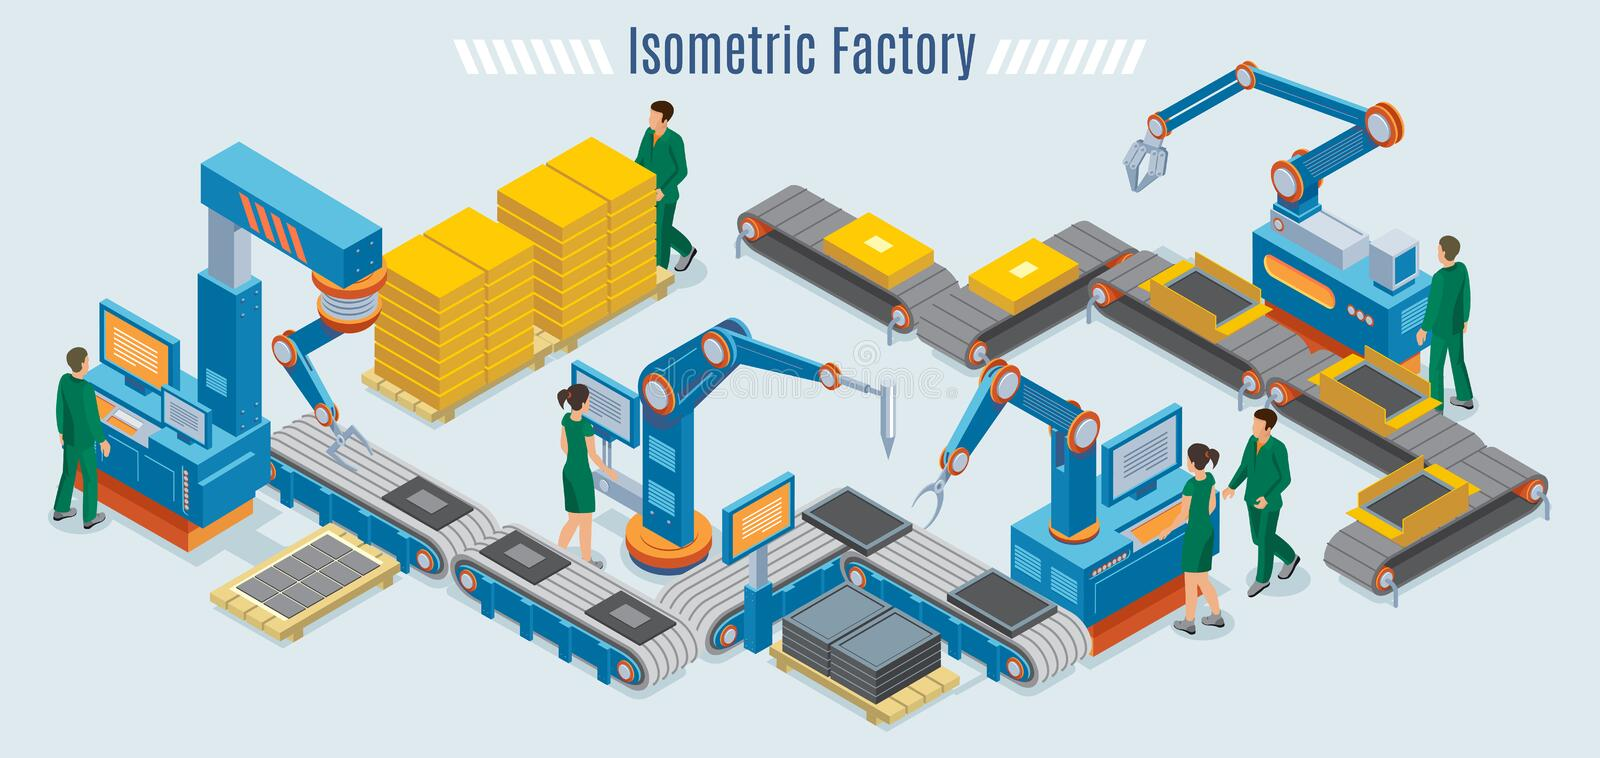 Isometric Industrial Factory Template vector illustration